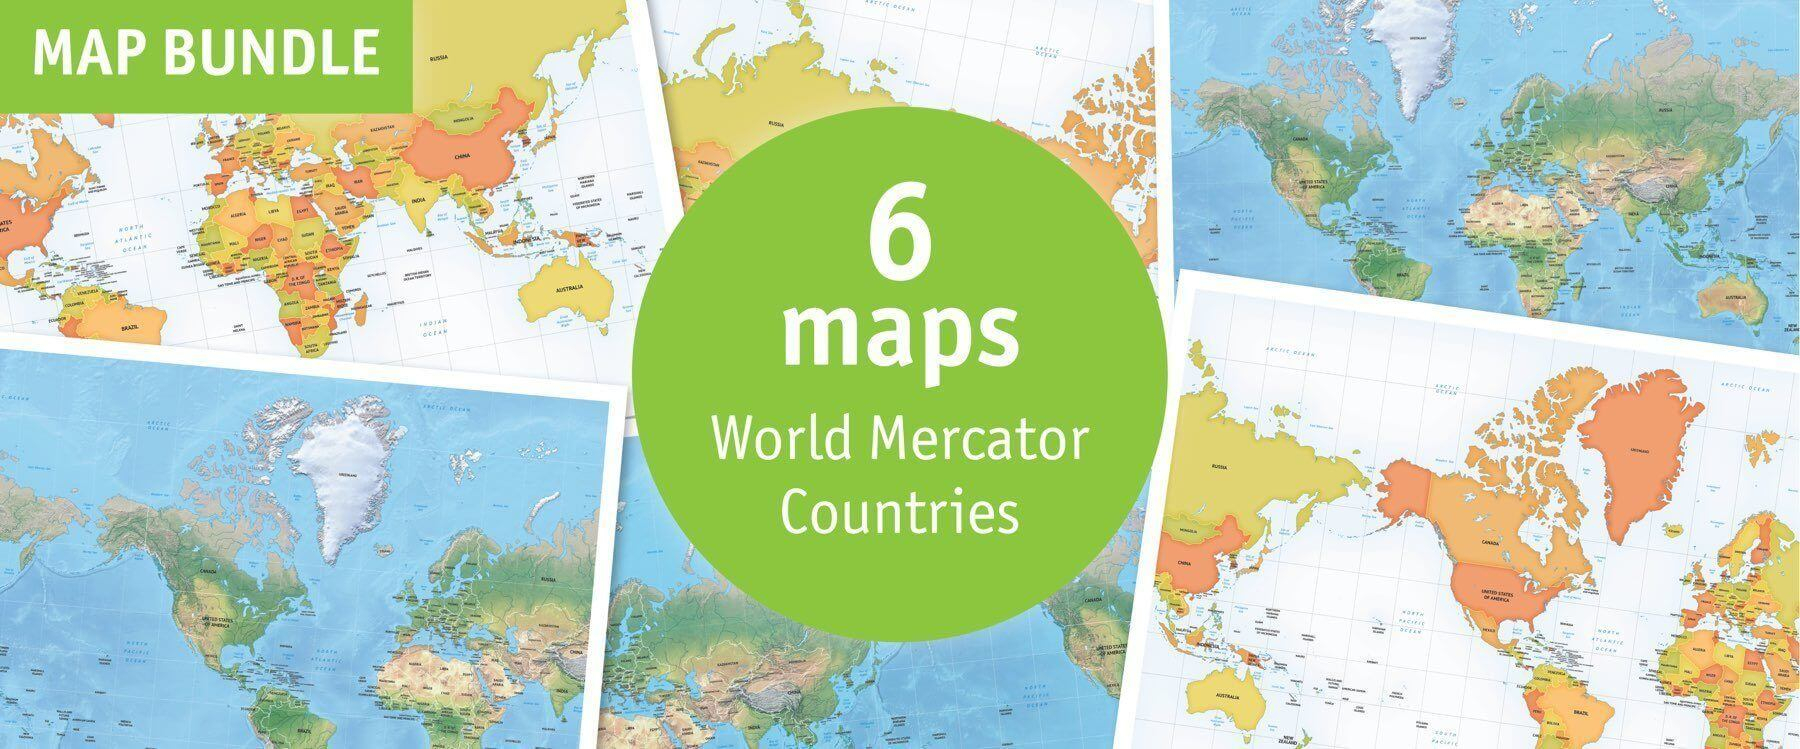 Catalog Digital World Maps One Stop Map - Maps of world